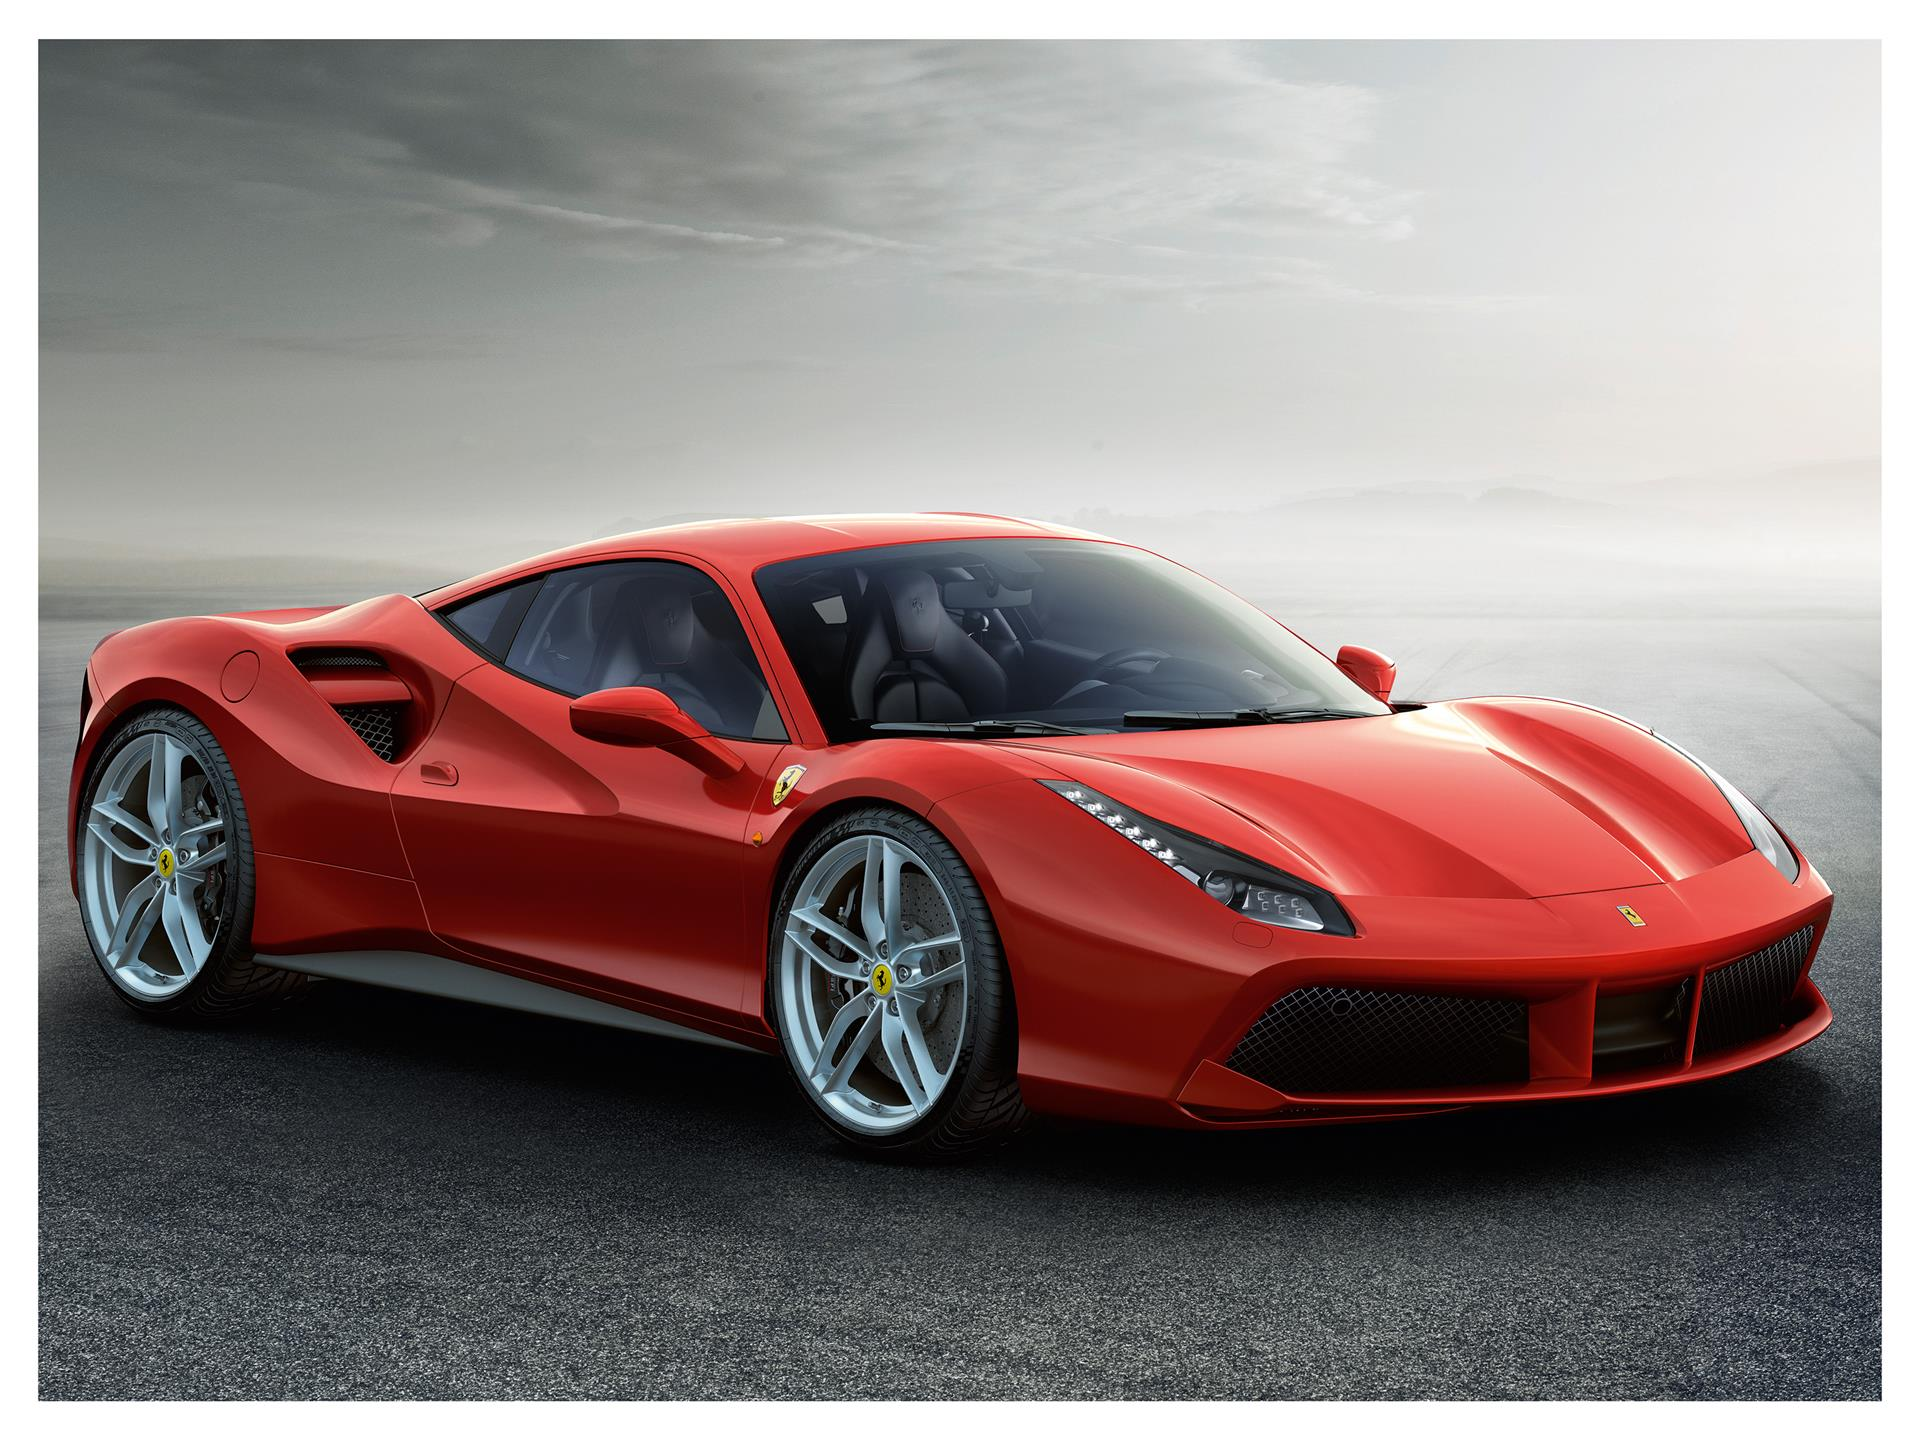 2015 Ferrari 488 Gtb Wallpapers Hd Drivespark